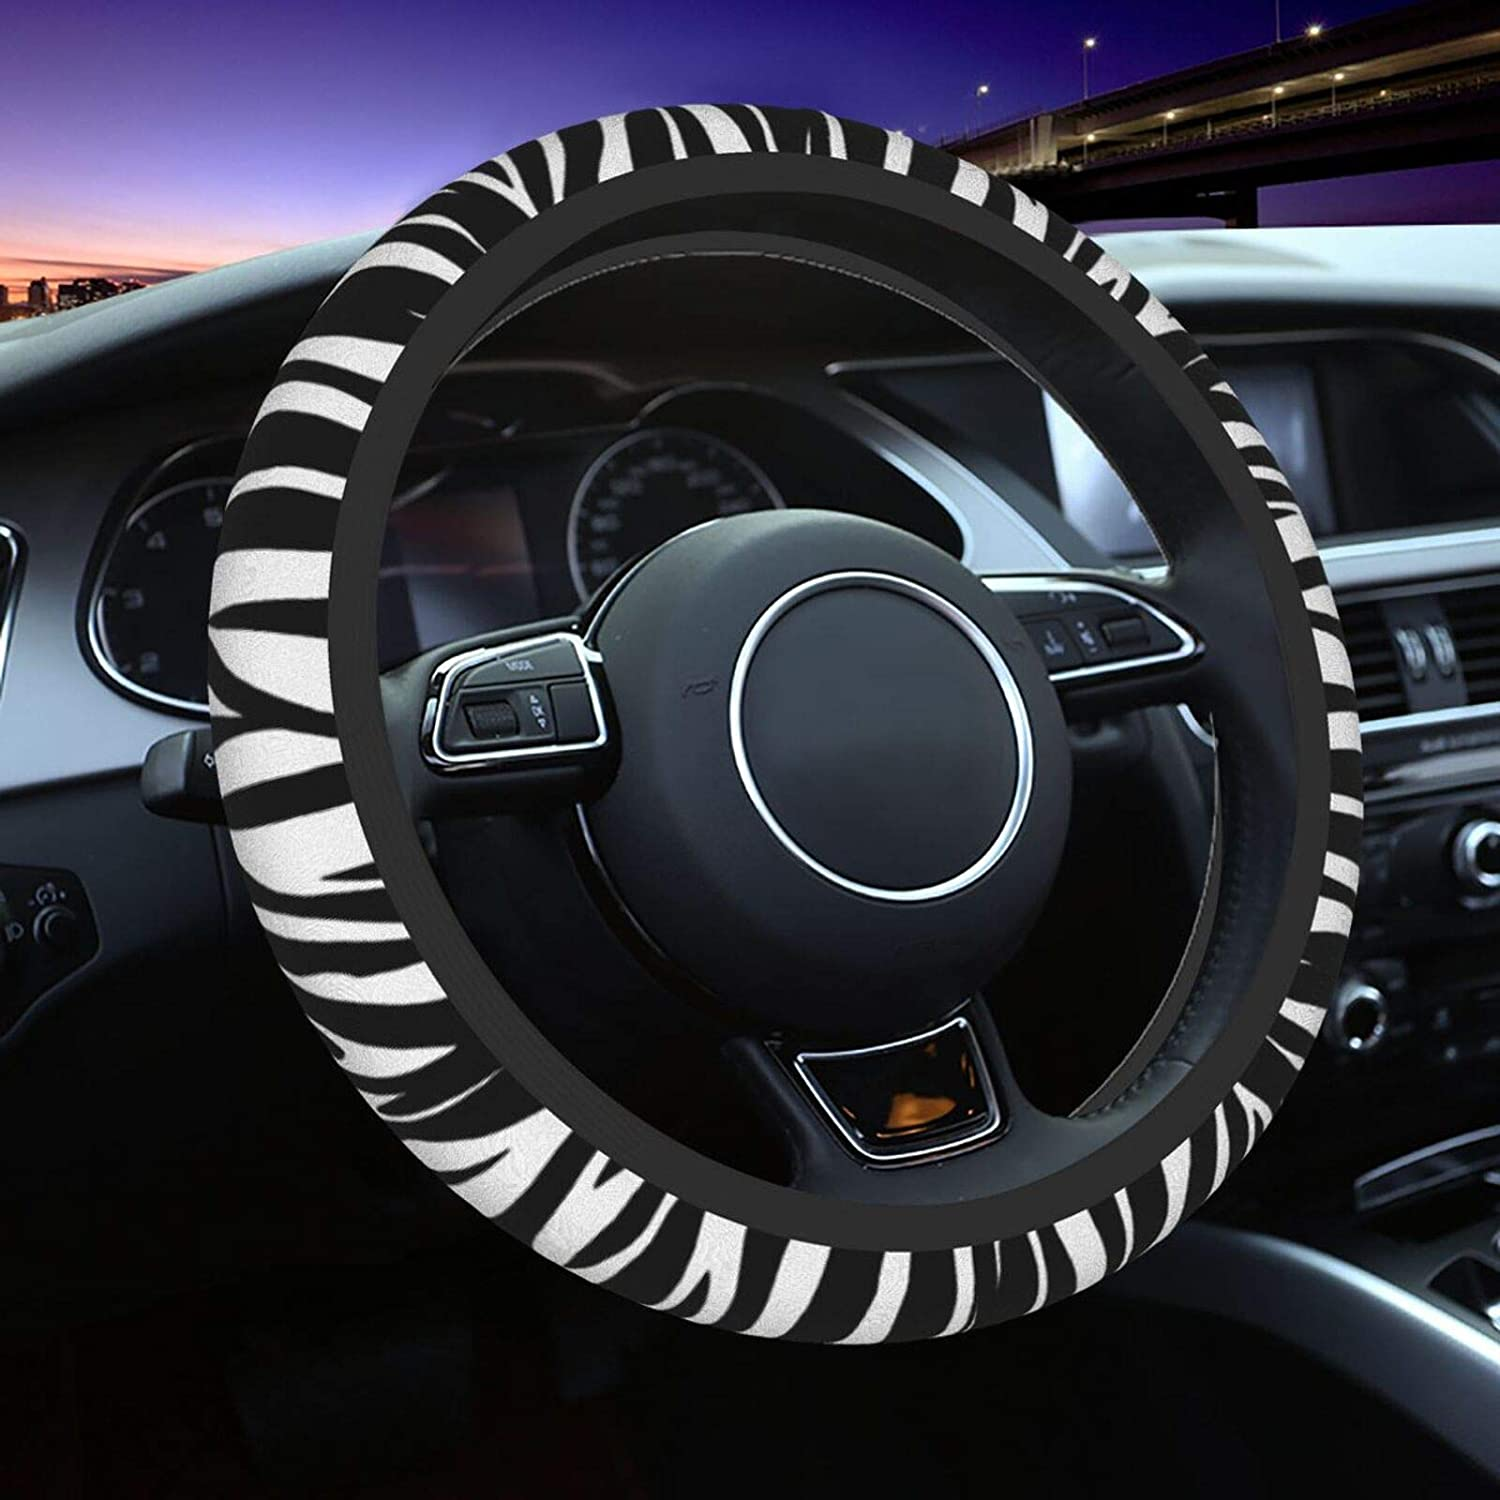 XINQIXAA Zebra Print Steering Wheel Cover Auto Steering Wheel Cover Protector Anti-Slip Durable Universal 15 Inch Fit Most of Car